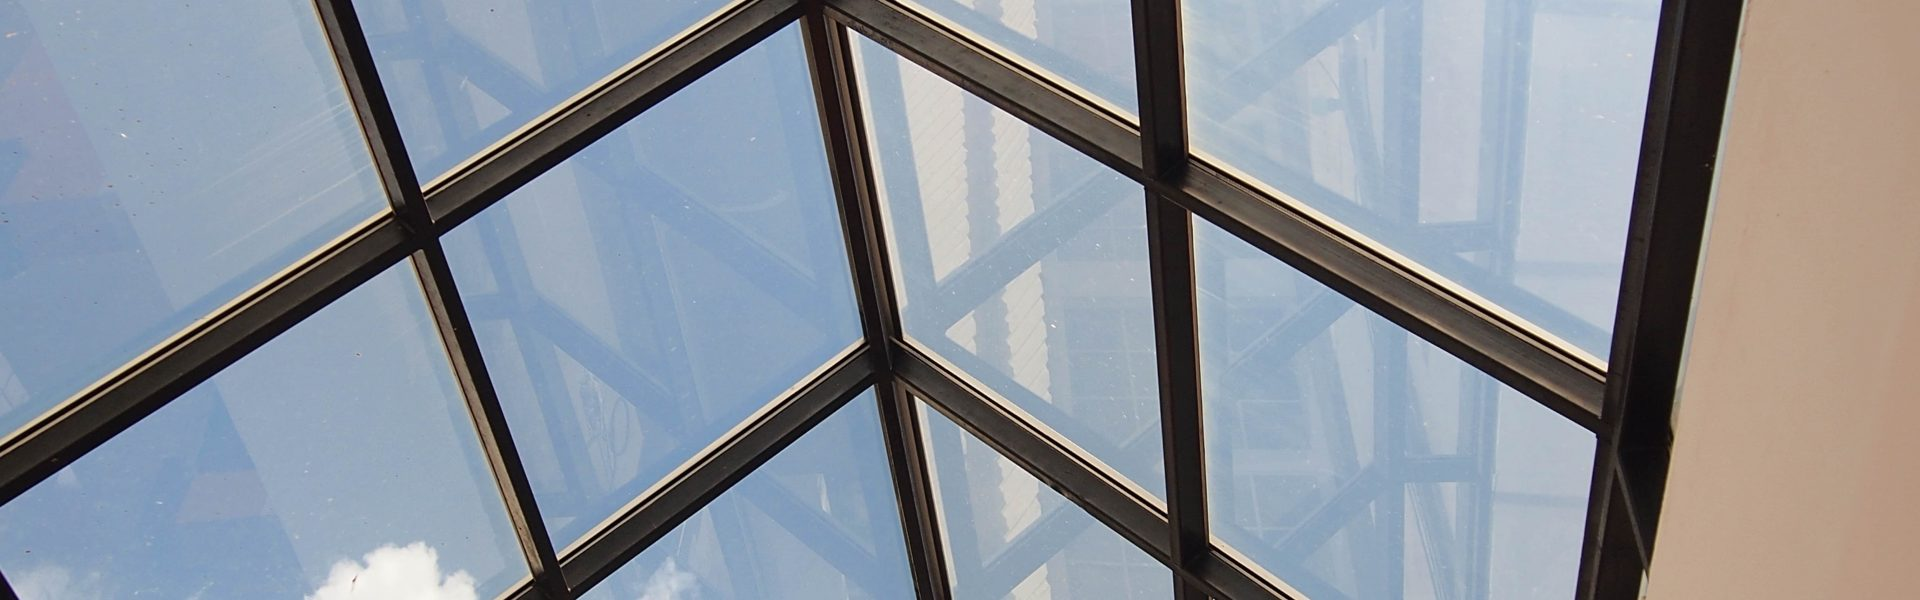 Lantern Roof Quotes Coventry